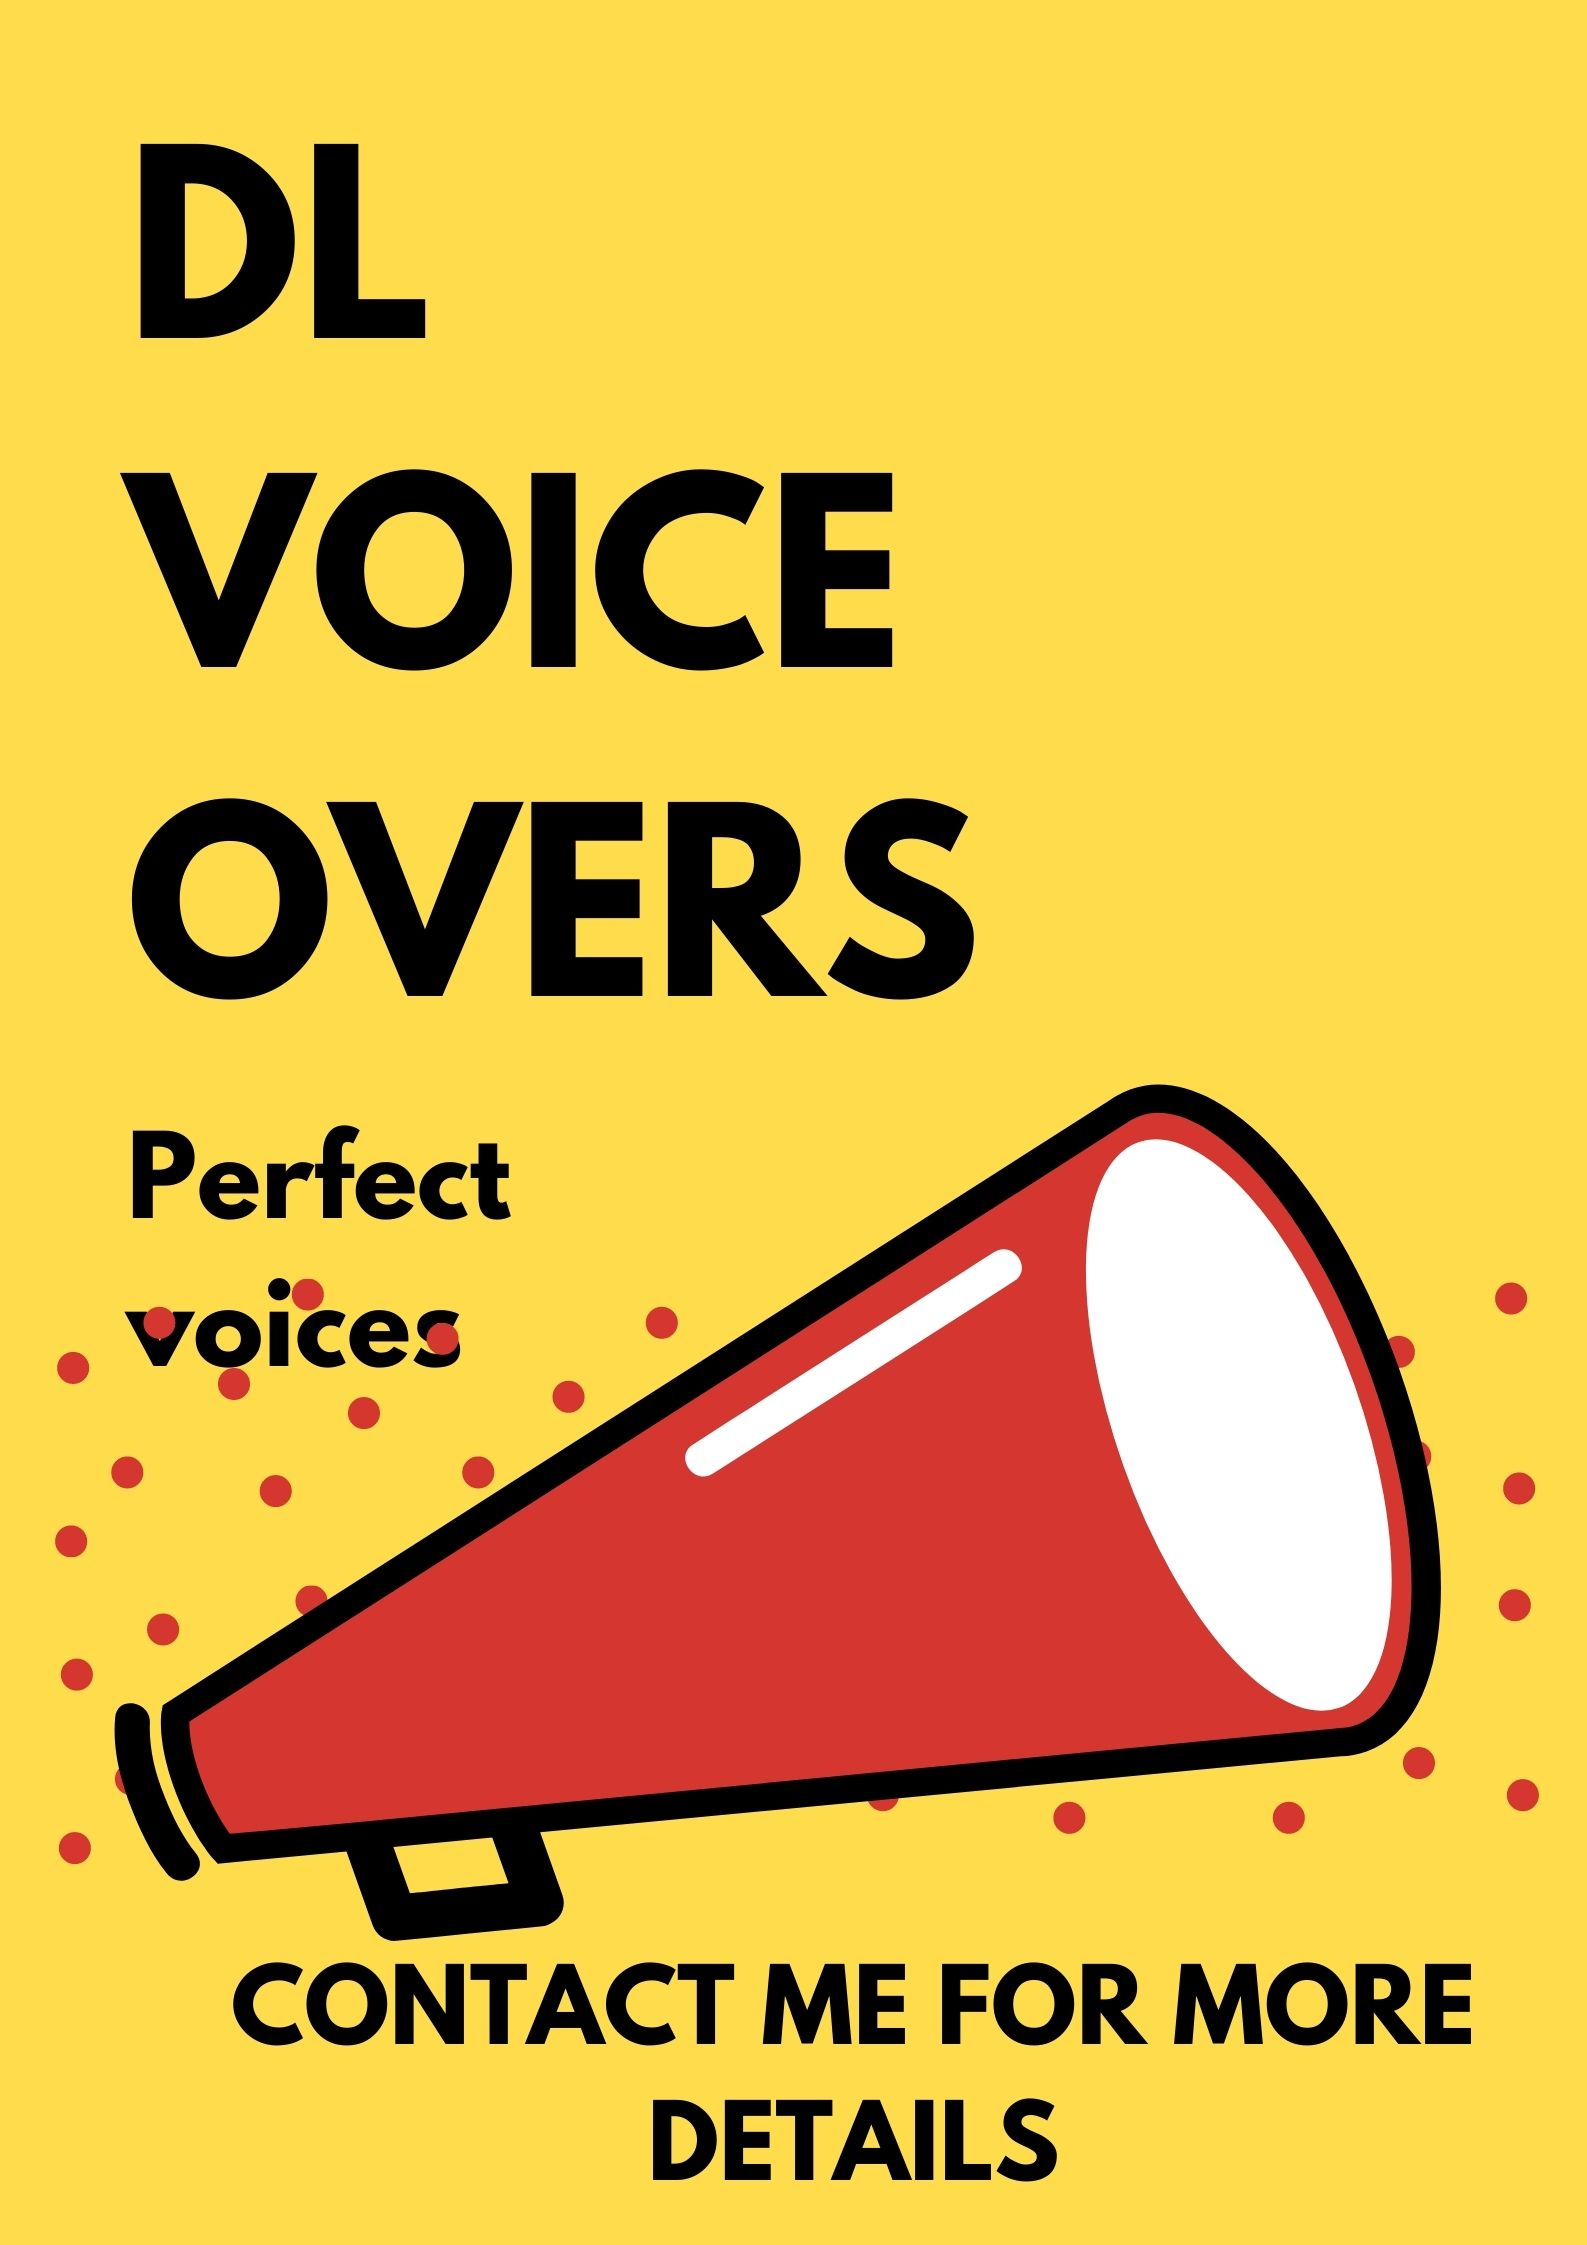 I will record male, female, kid voice overs